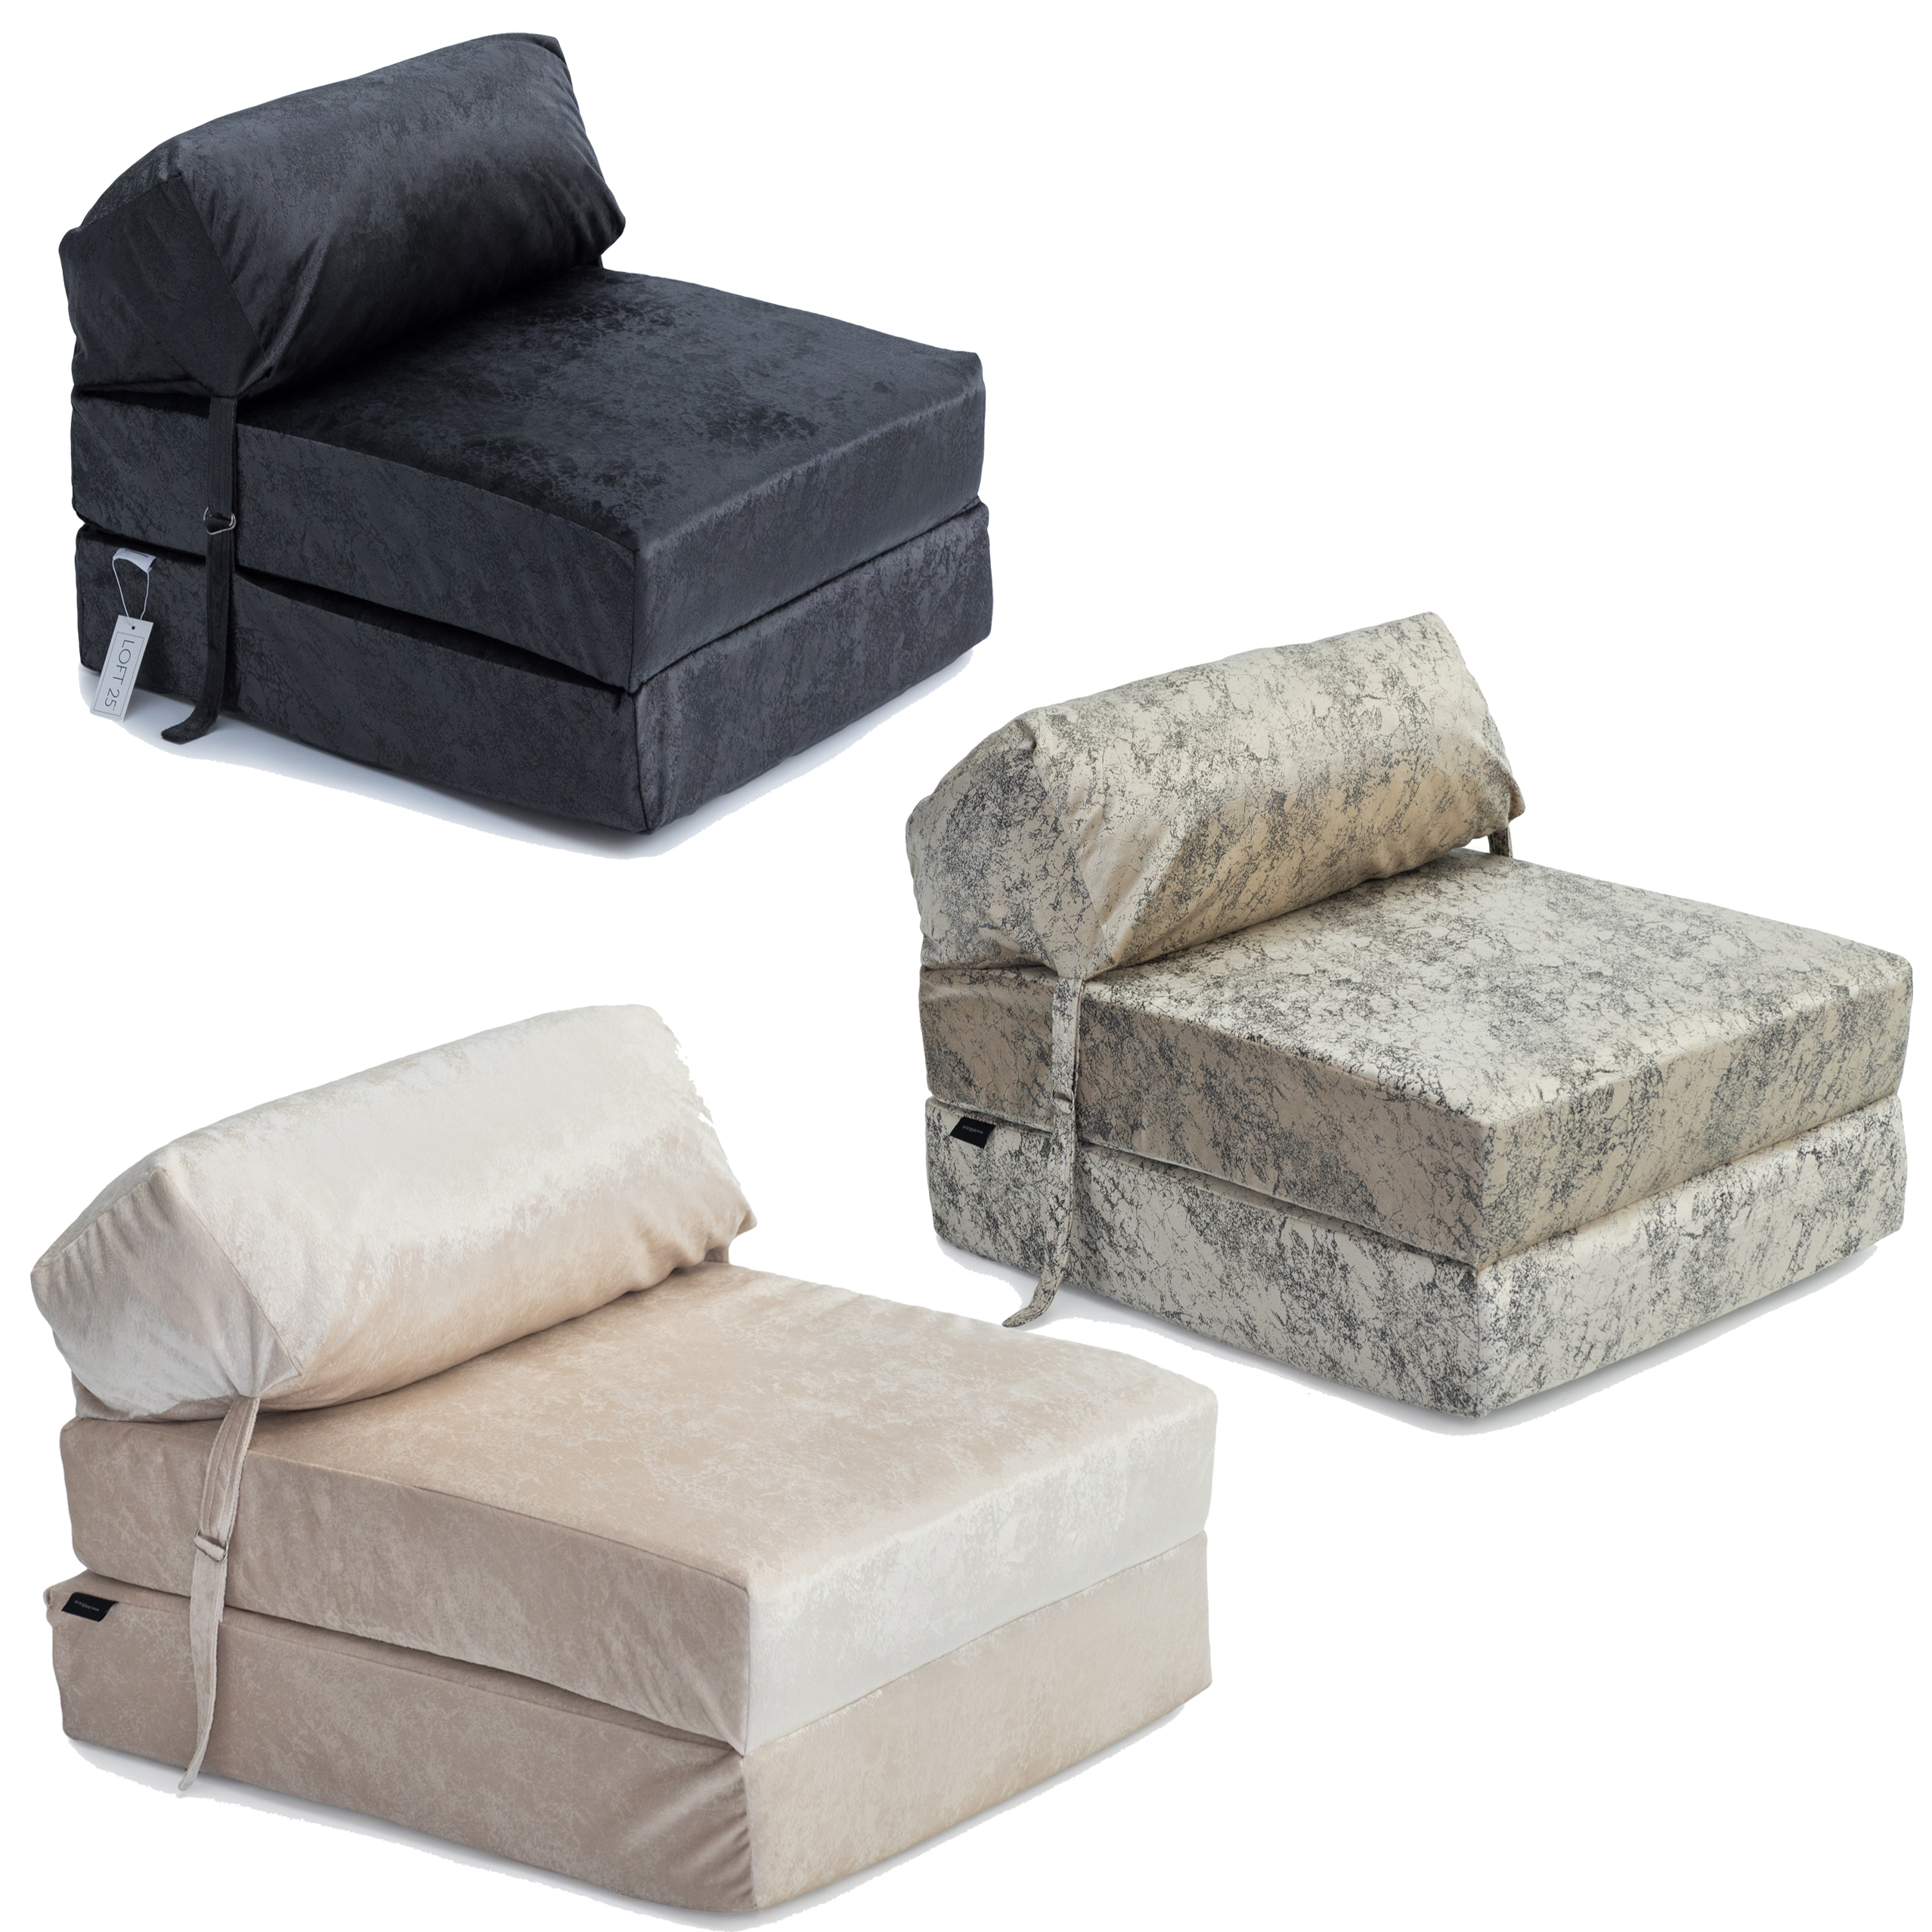 Phenomenal Details About Crushed Velvet Single Chair Bed Sofa Zbed Mattress Seat Foam Fold Out Guest Gmtry Best Dining Table And Chair Ideas Images Gmtryco